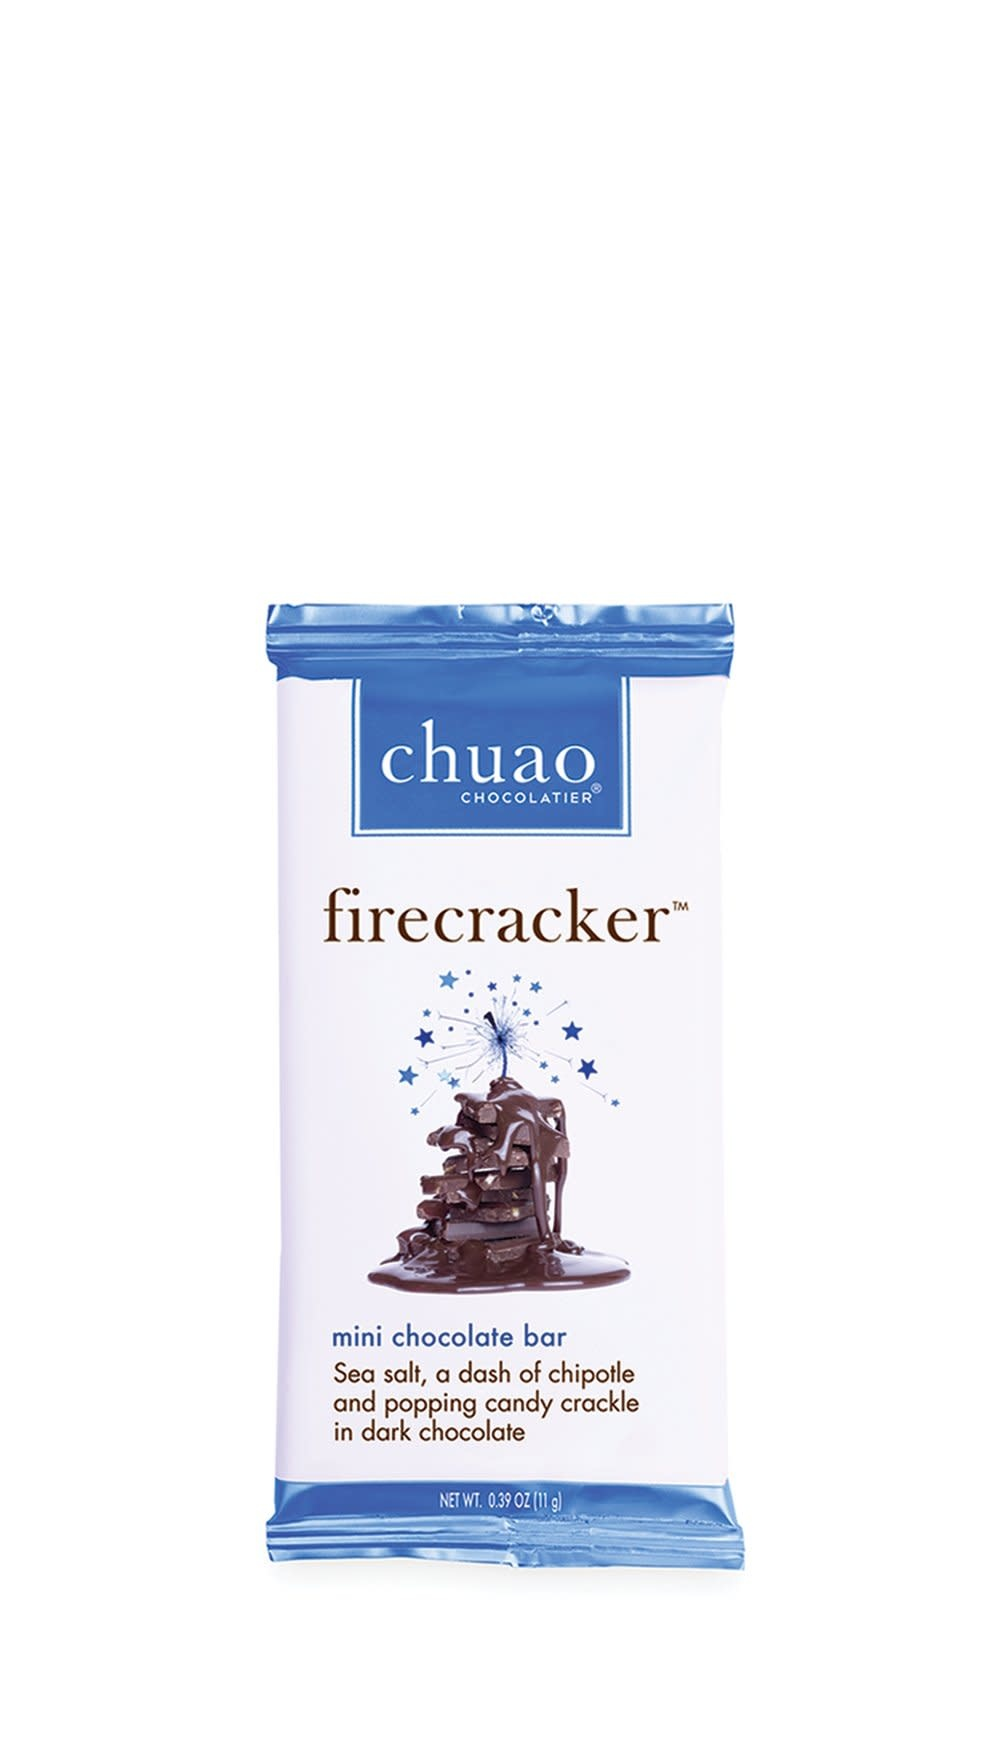 Chuao Mini Firecracker Chocolate Bar, Carlsbad, CA